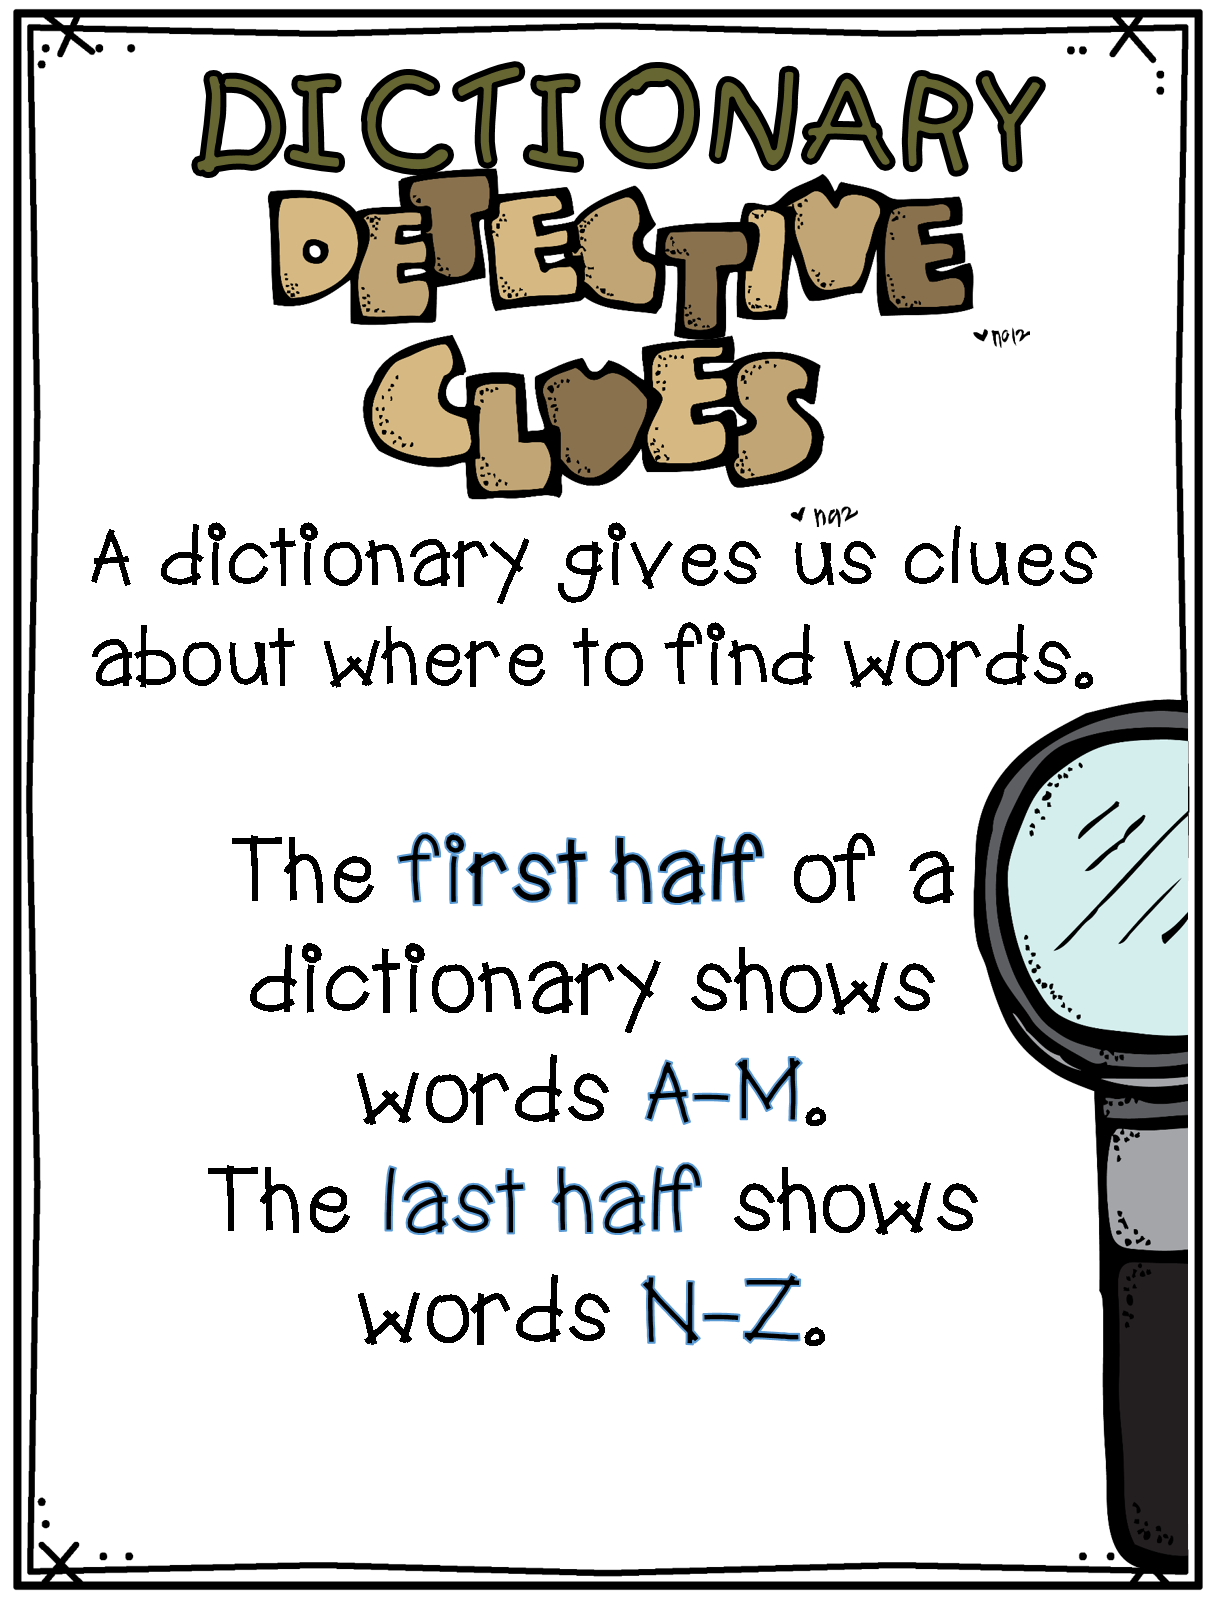 Detective clipart vocabulary. Dictionary skills what first